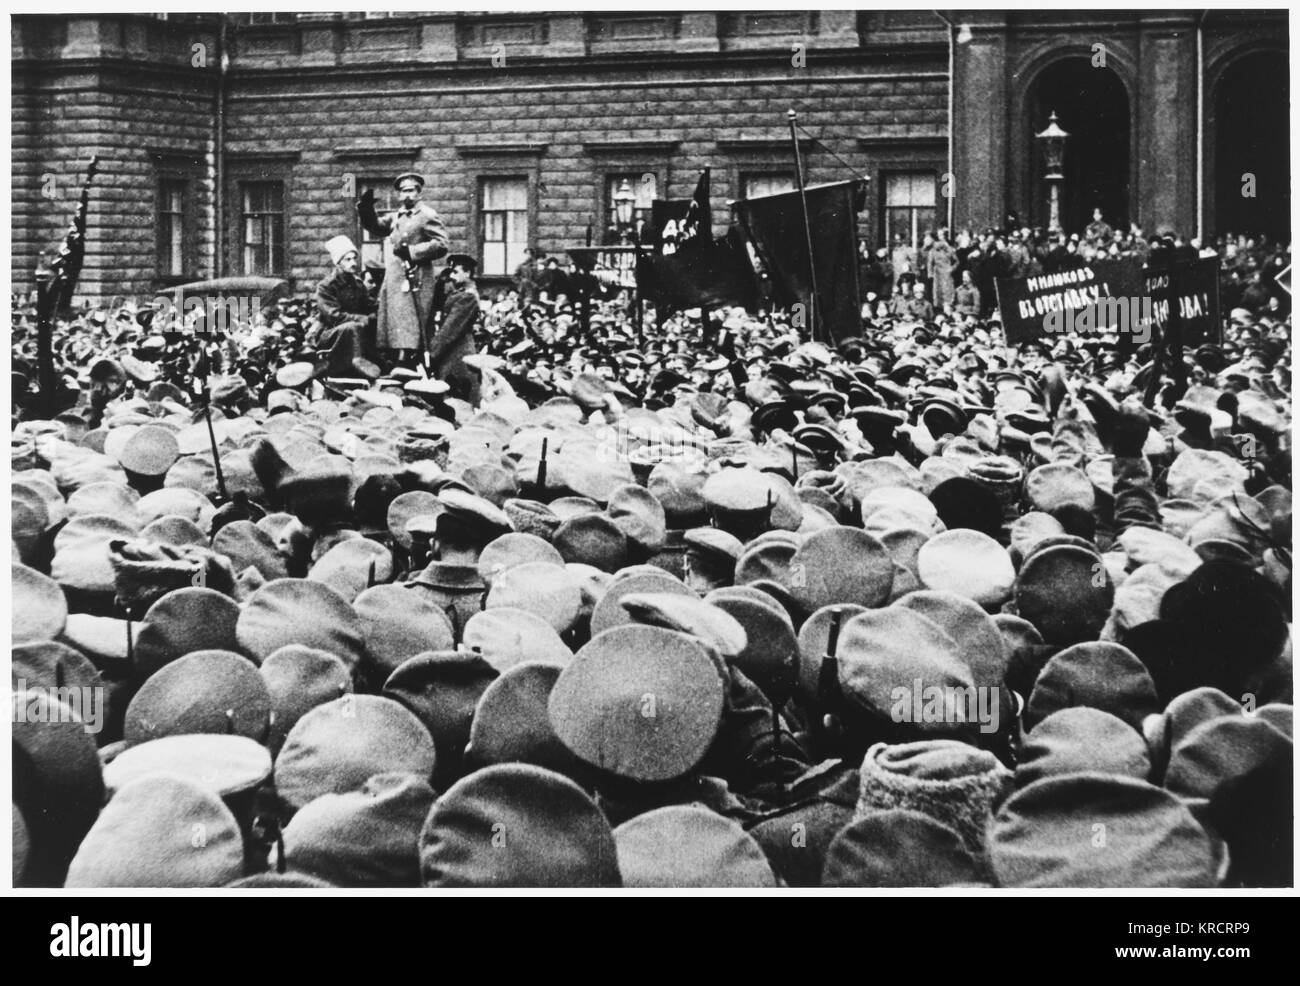 RUSSIAN REVOLUTION - Workers and soldiers demonstrate against the Imperialist policies of Milinkov Dardanelsky. - Stock Image